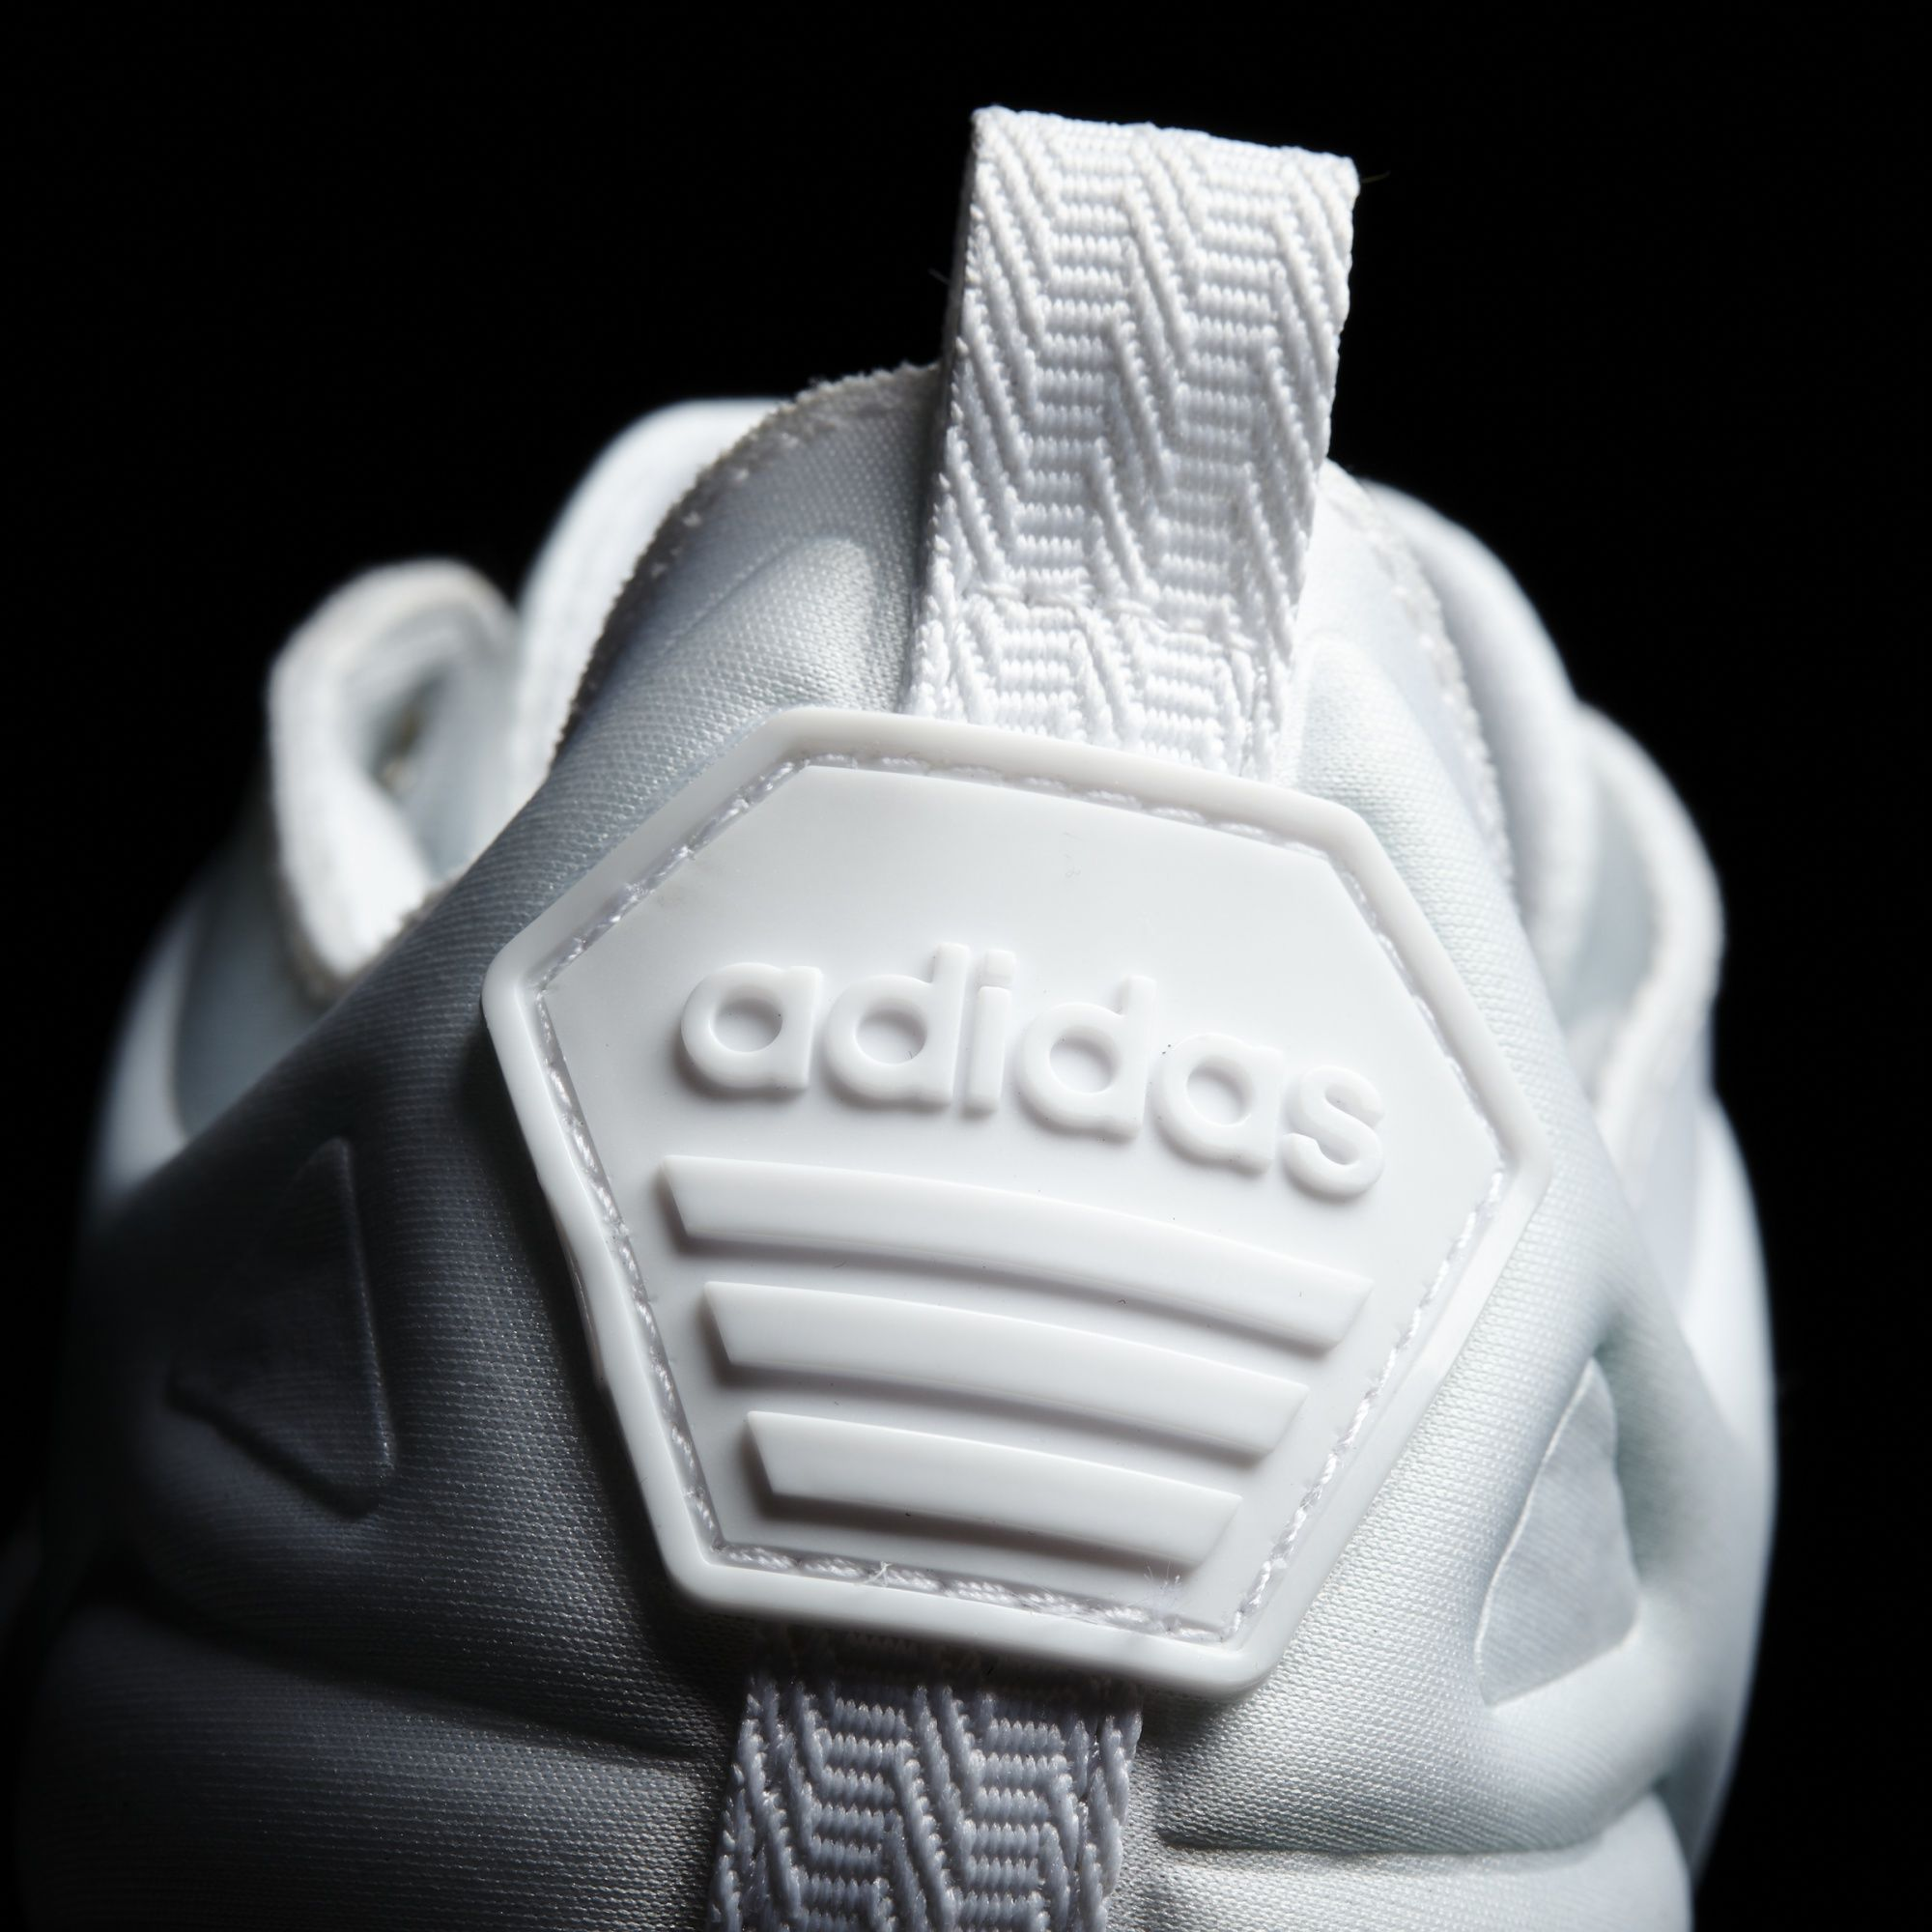 adidas Cloudfoam Super Racer Shoes | Shoes, Fashion shoes